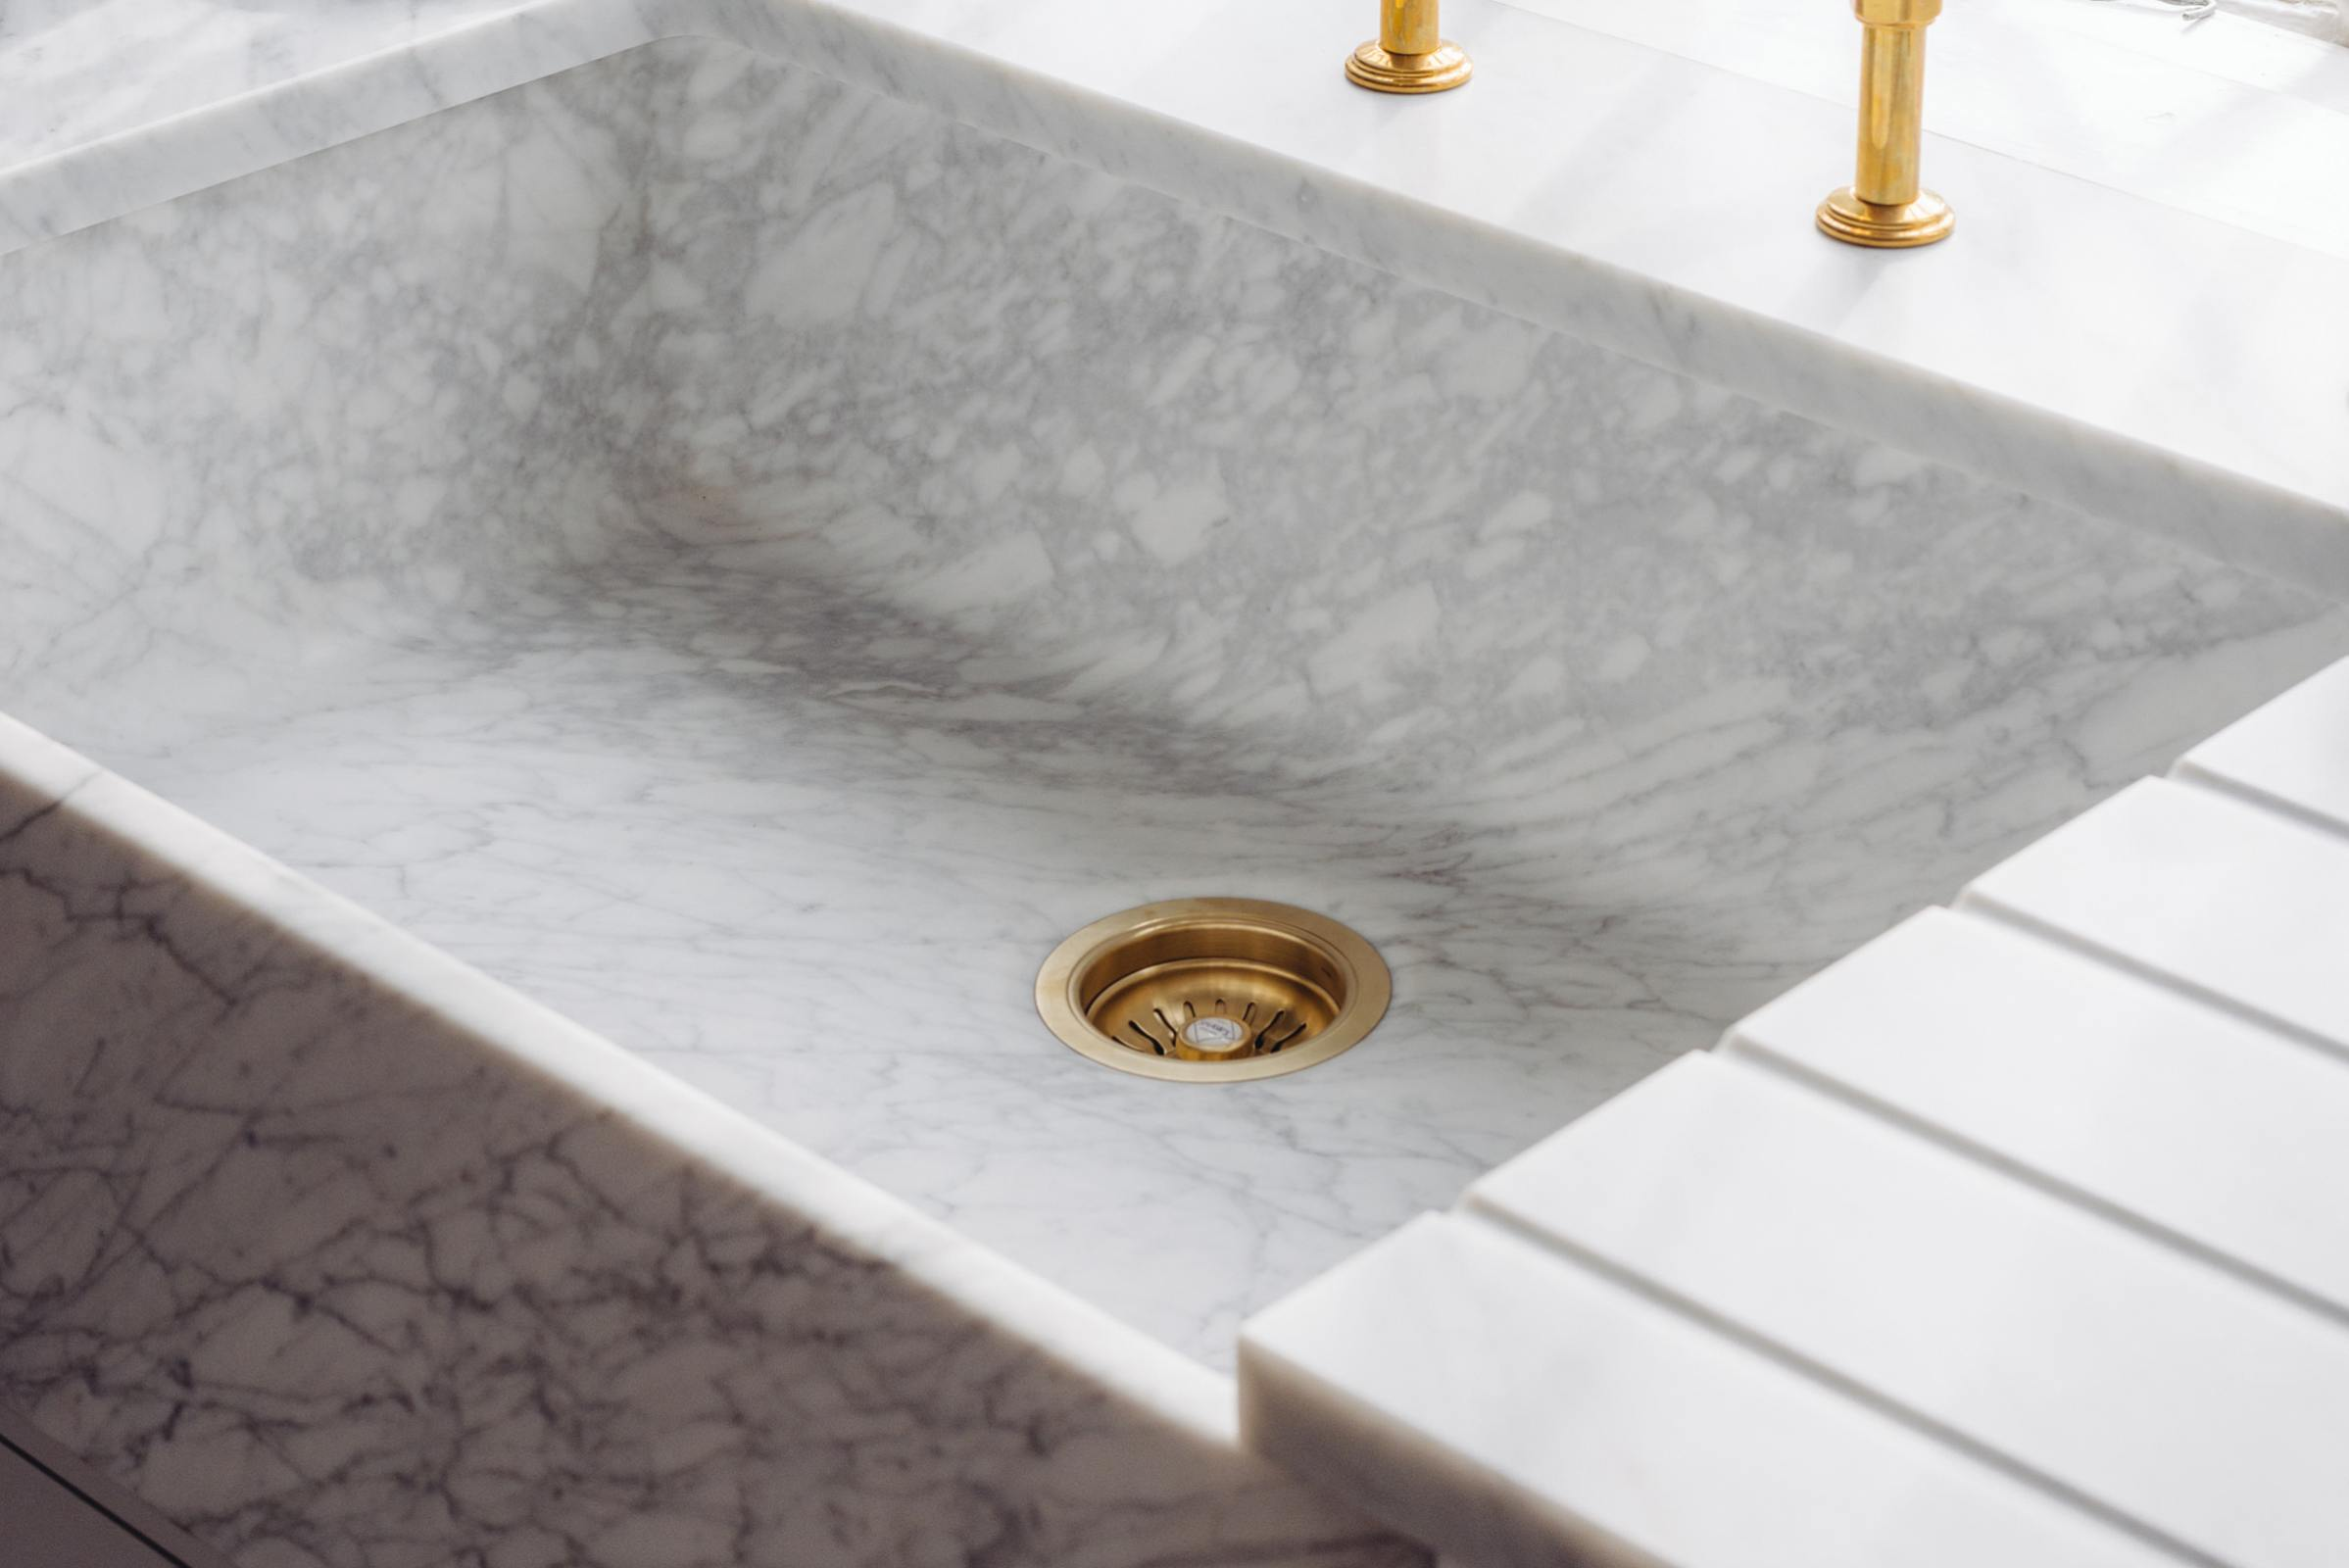 Milano Penthouse 31 1/2'' Single Marble Sink photo 6